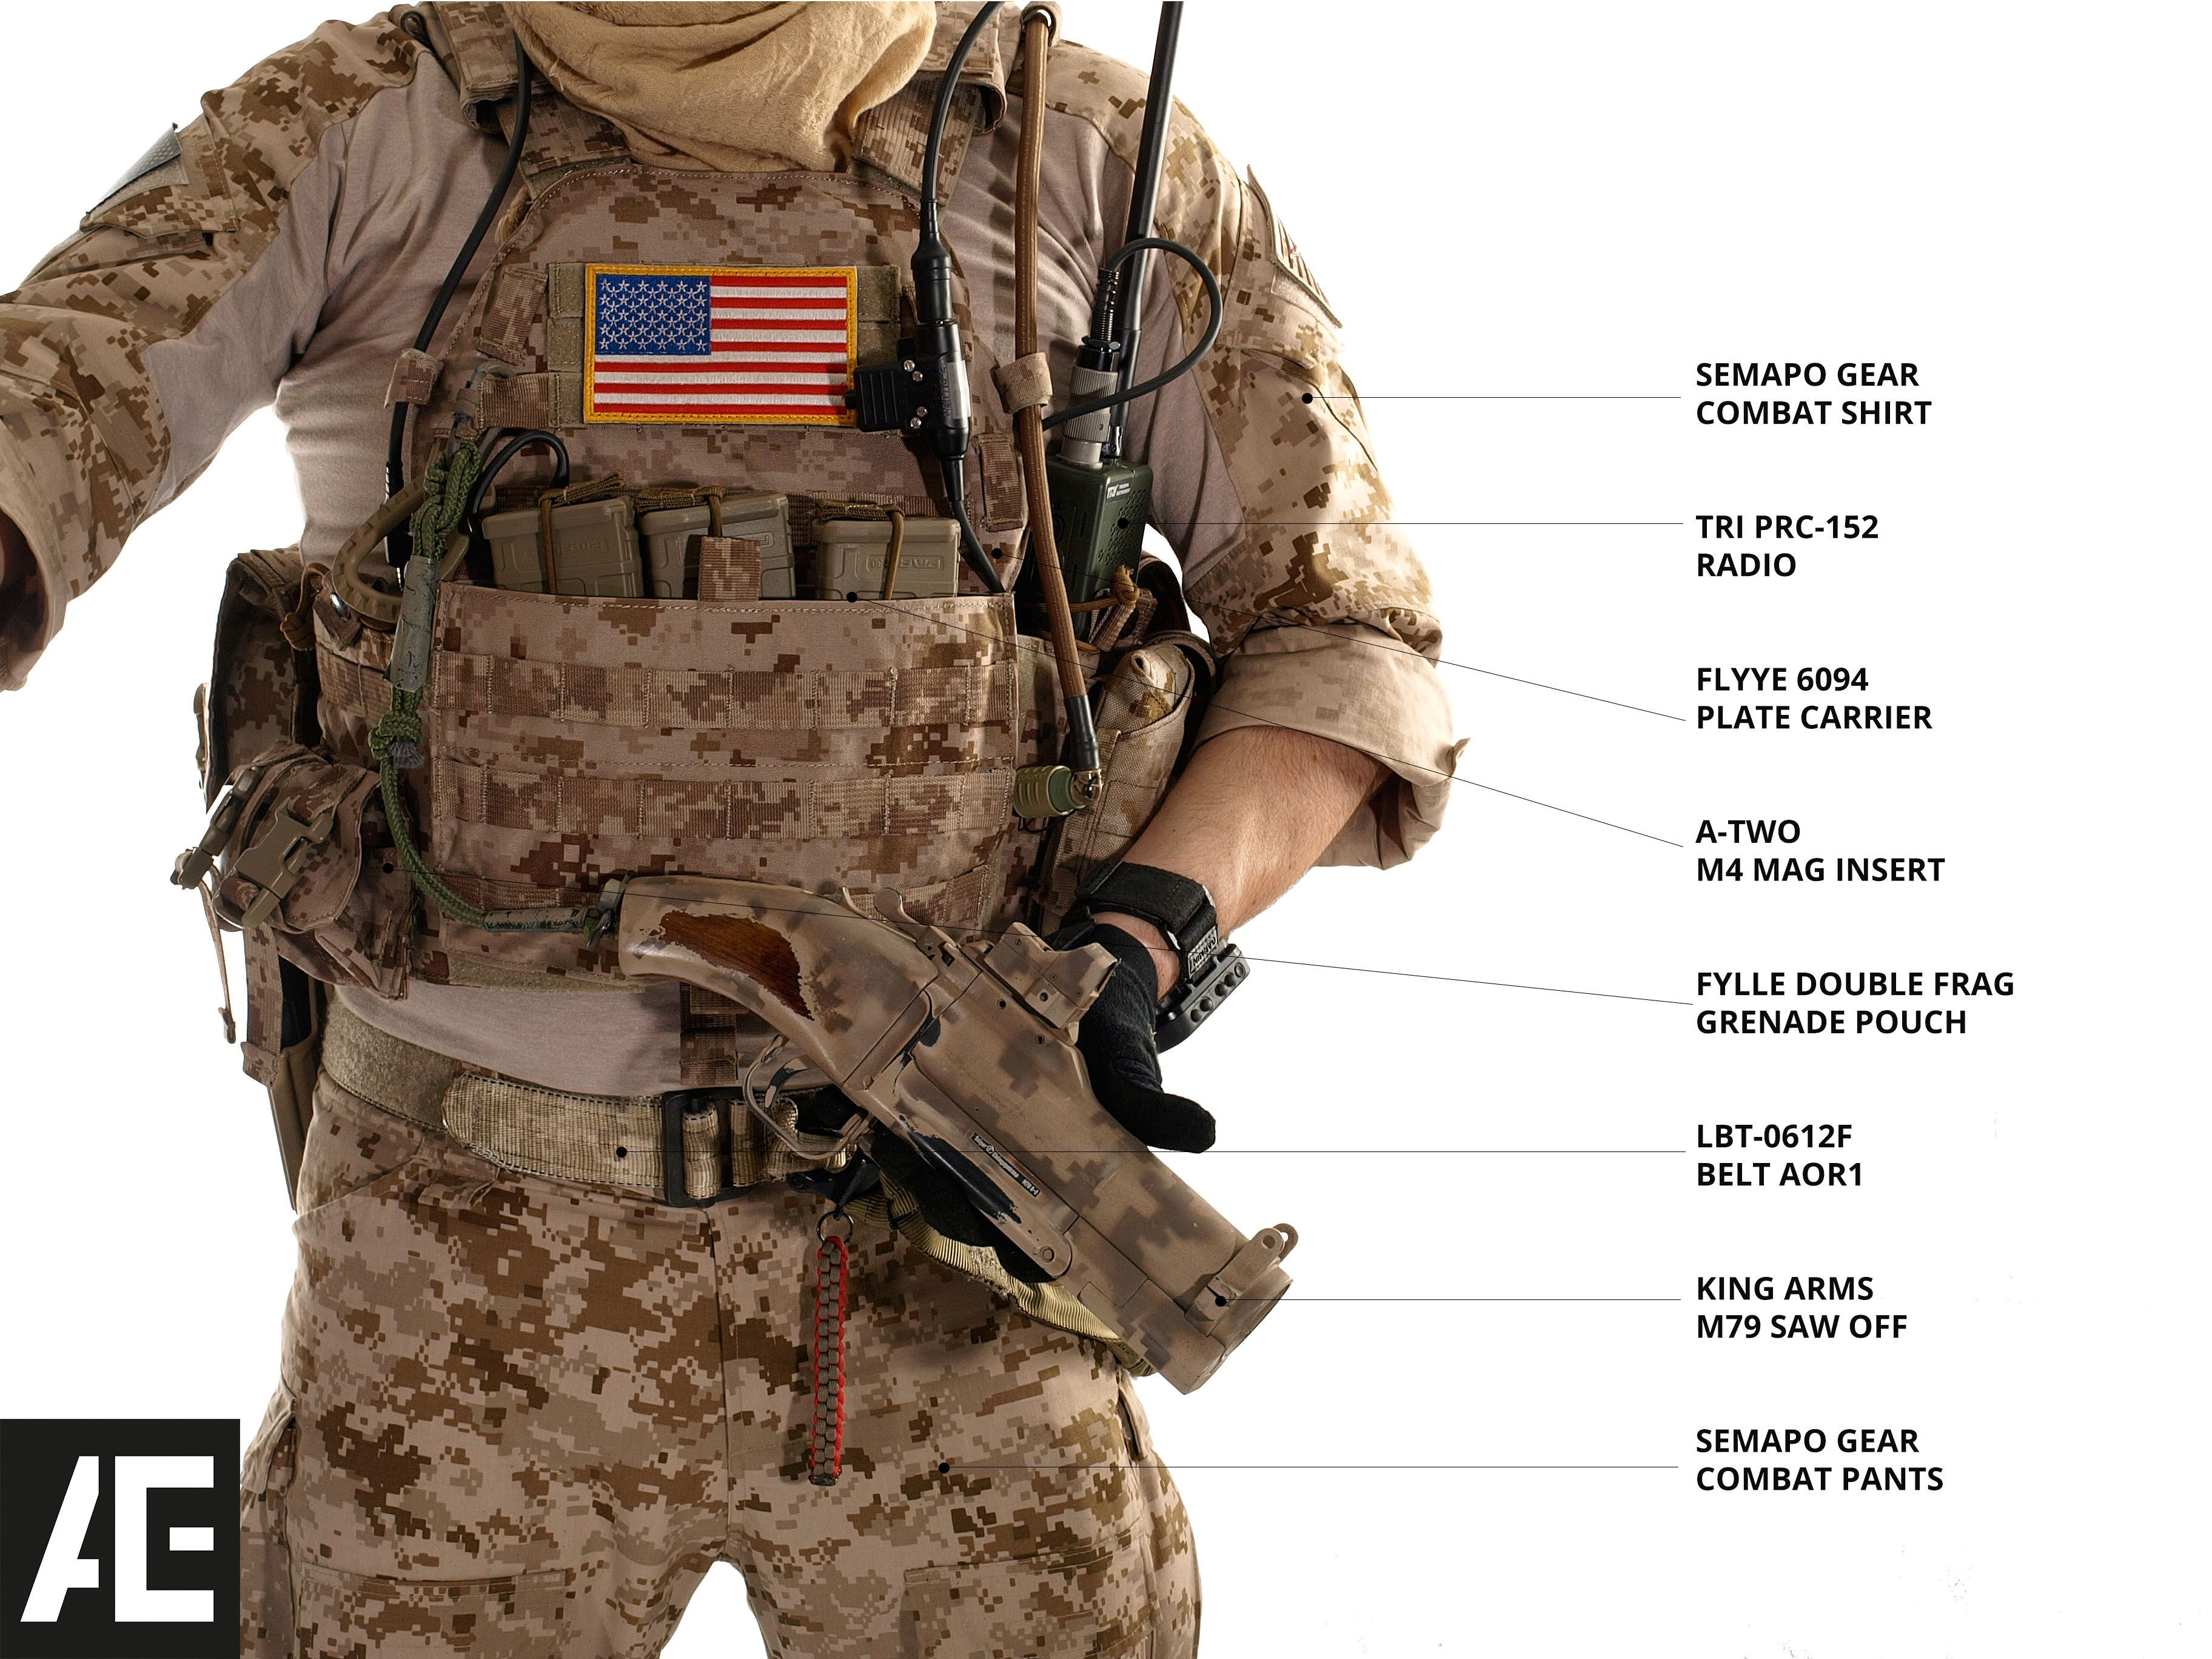 Favori Navy Seal Gear Kitlist 2013 | Bugging out, Prepping and Survival  TJ46